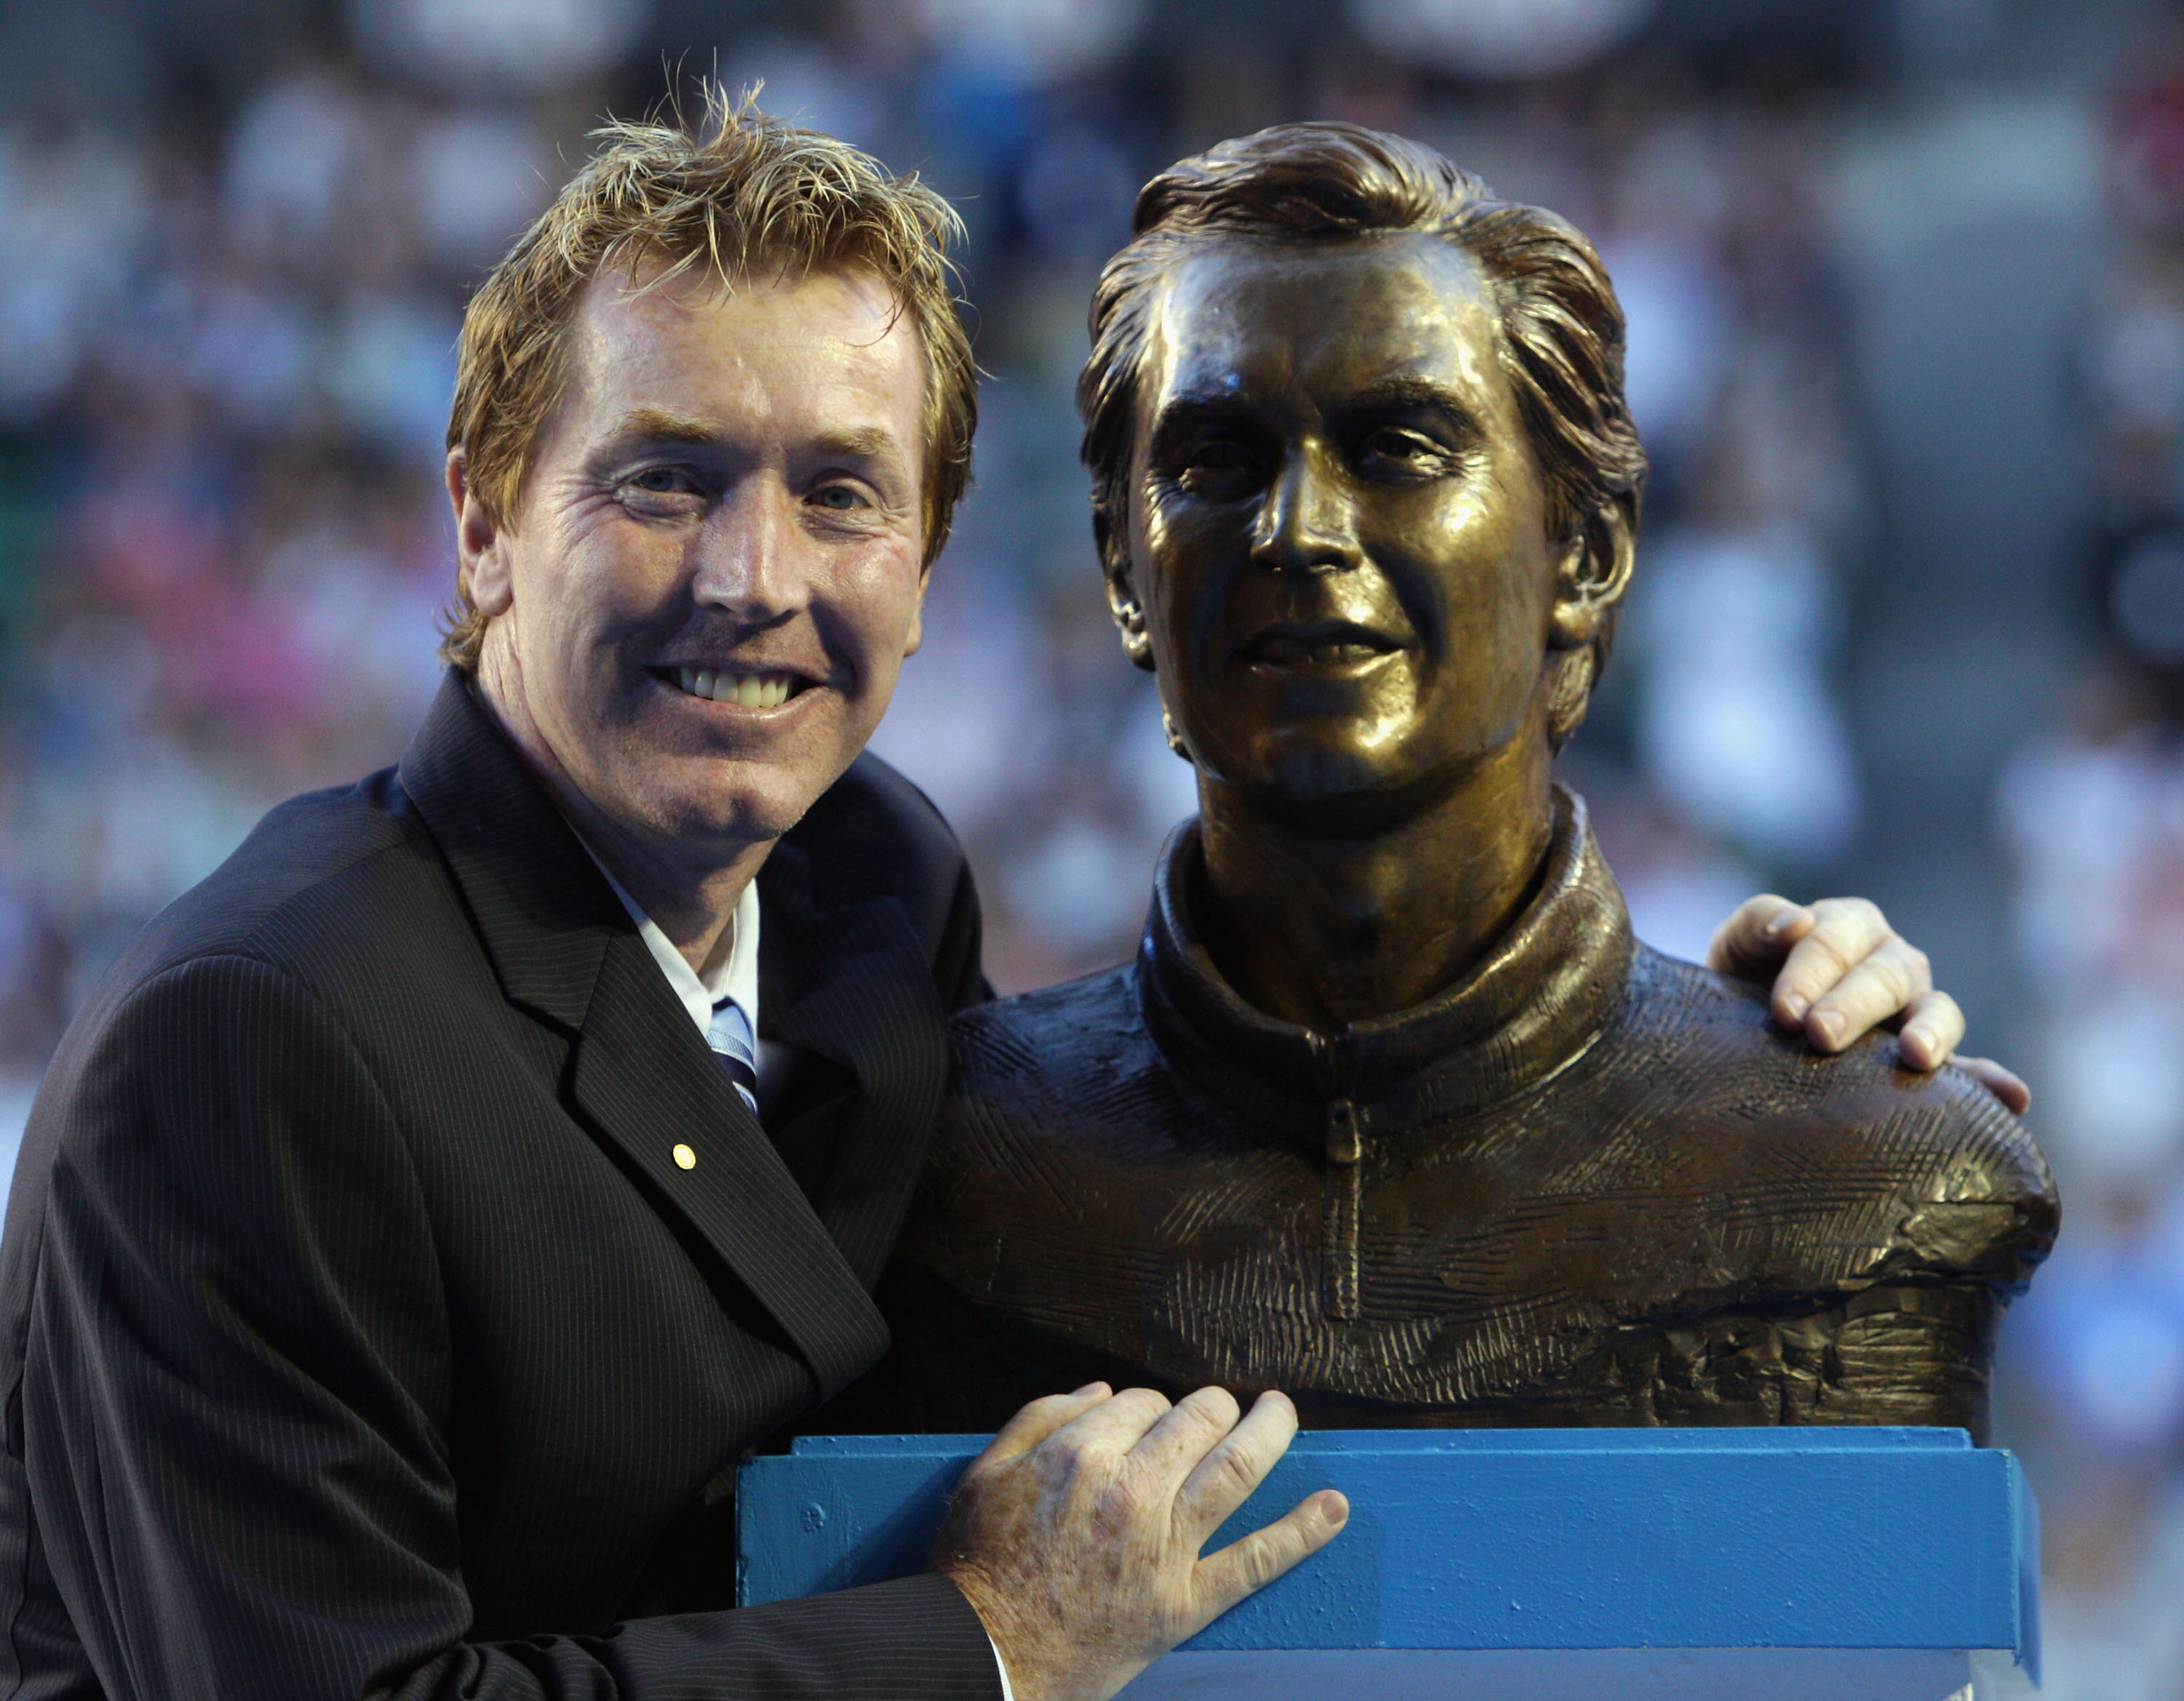 MELBOURNE, AUSTRALIA - JANUARY 26:  Former tennis player Mark Woodforde of Australia poses after being inducted into the Australian Tennis Hall of Fame during the Australia Day presentation in Rod Laver Arena during day nine of the 2010 Australian Open at